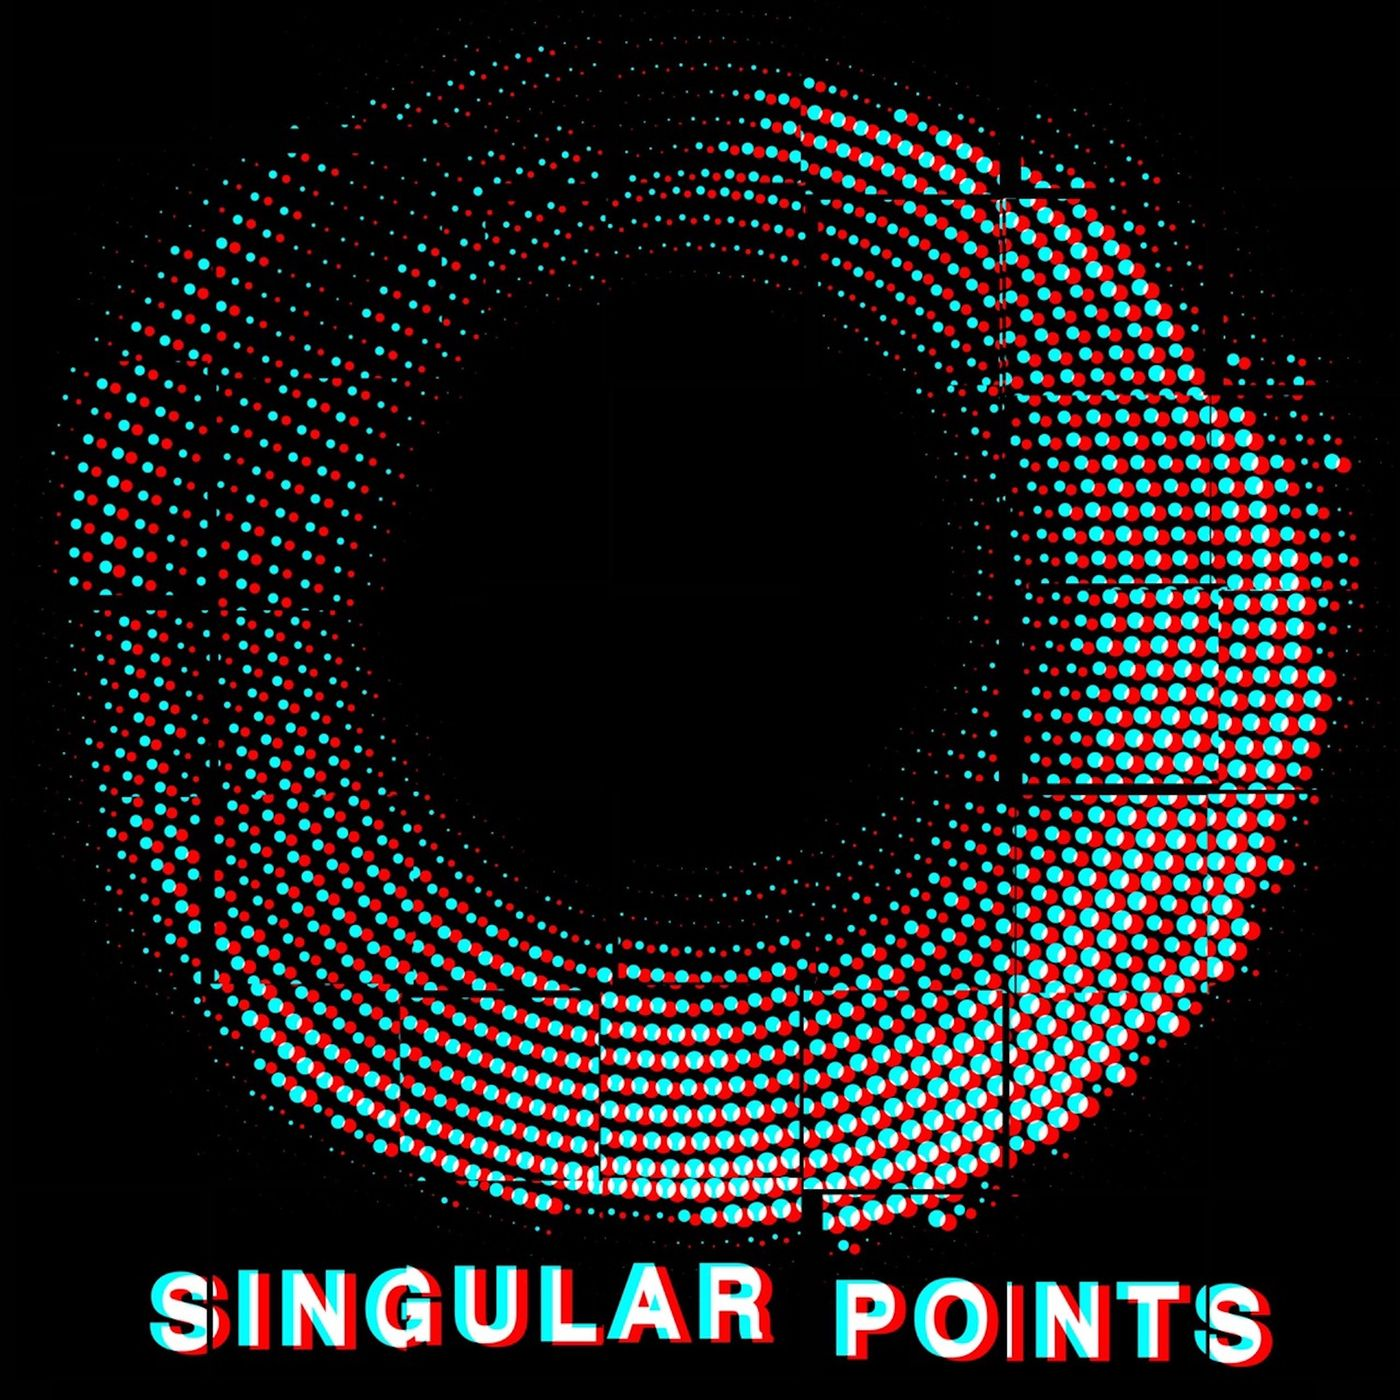 Make My Day - Singular Points [single] (2020)